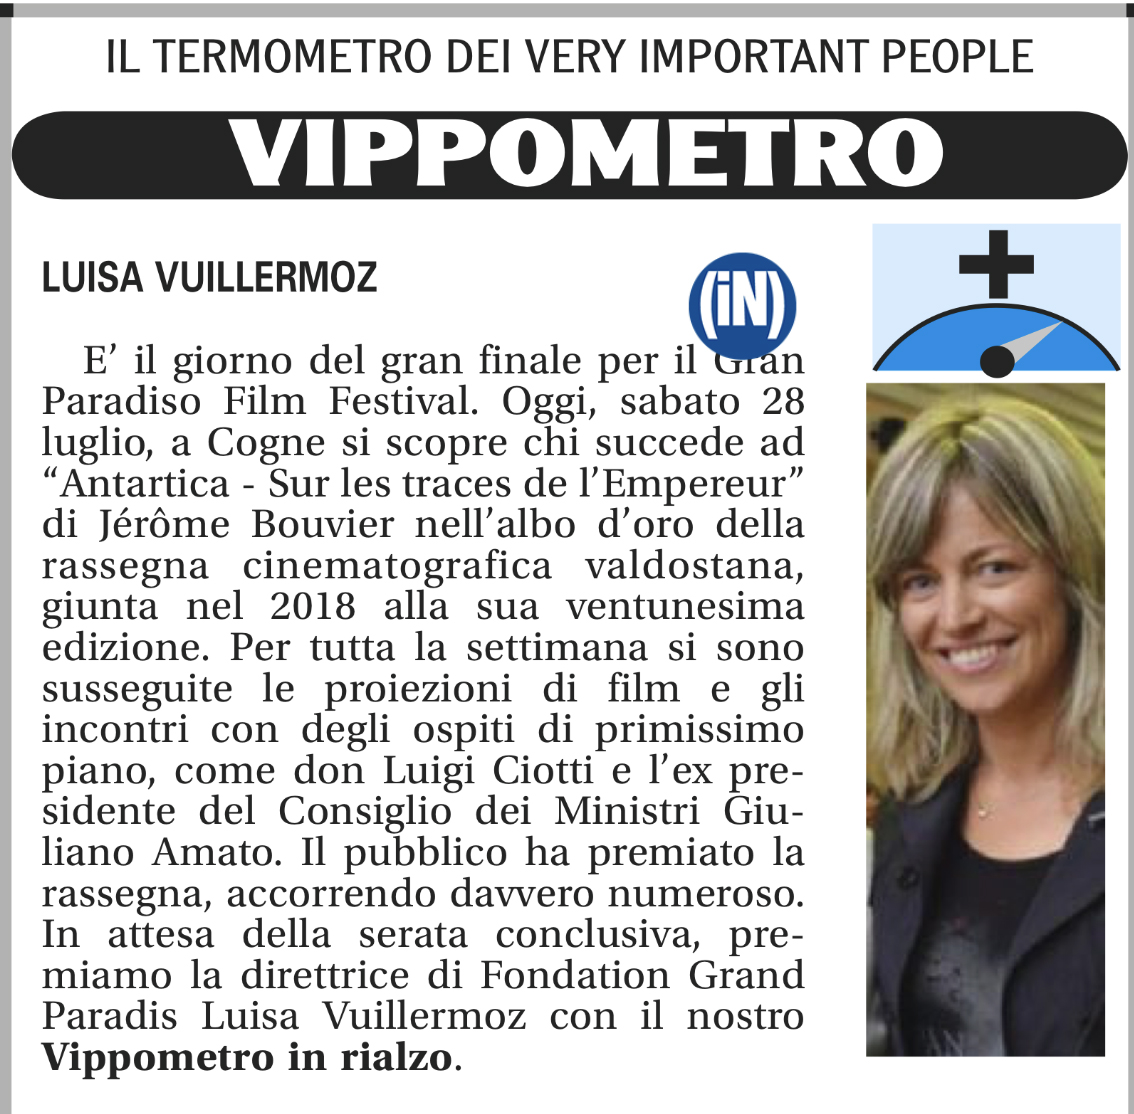 2018-07-26-La-Vallee-Notizie---Il-termometro-dei-very-important-people